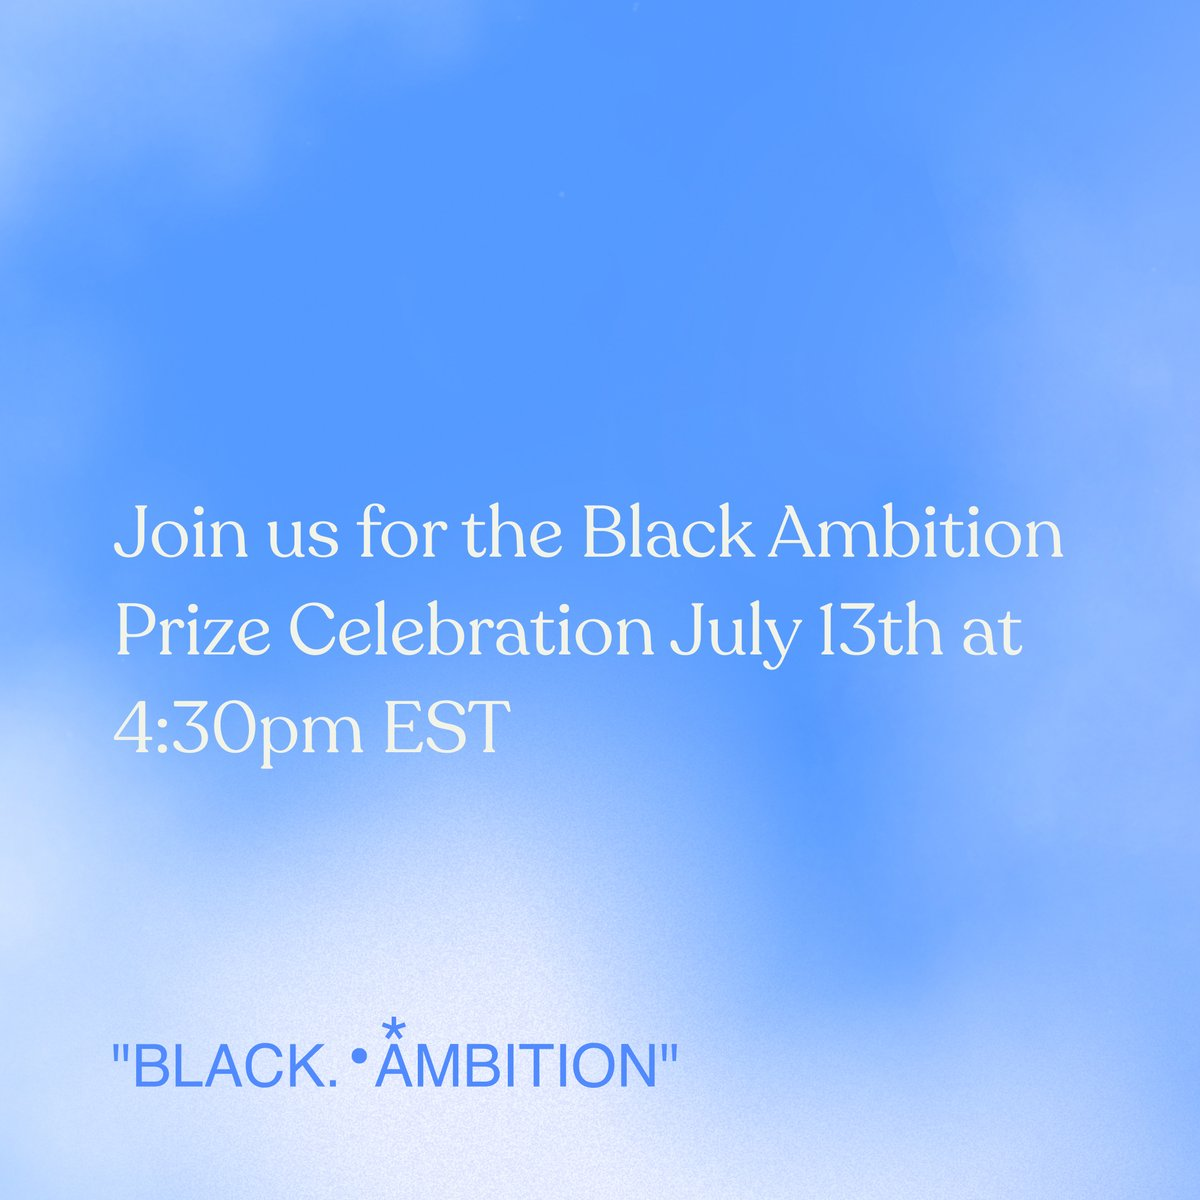 Looking forward to our @blackambitionpz event spotlighting the ingenuity and determination of #BlackAmbition's Black and Latinx entrepreneurs 🙏🏾  Join us Tuesday, July 13 at 4:30pm EST as we celebrate the top prize recipients and the inaugural year: https://t.co/FczWvOizIN .•* https://t.co/oXZDnVORSZ